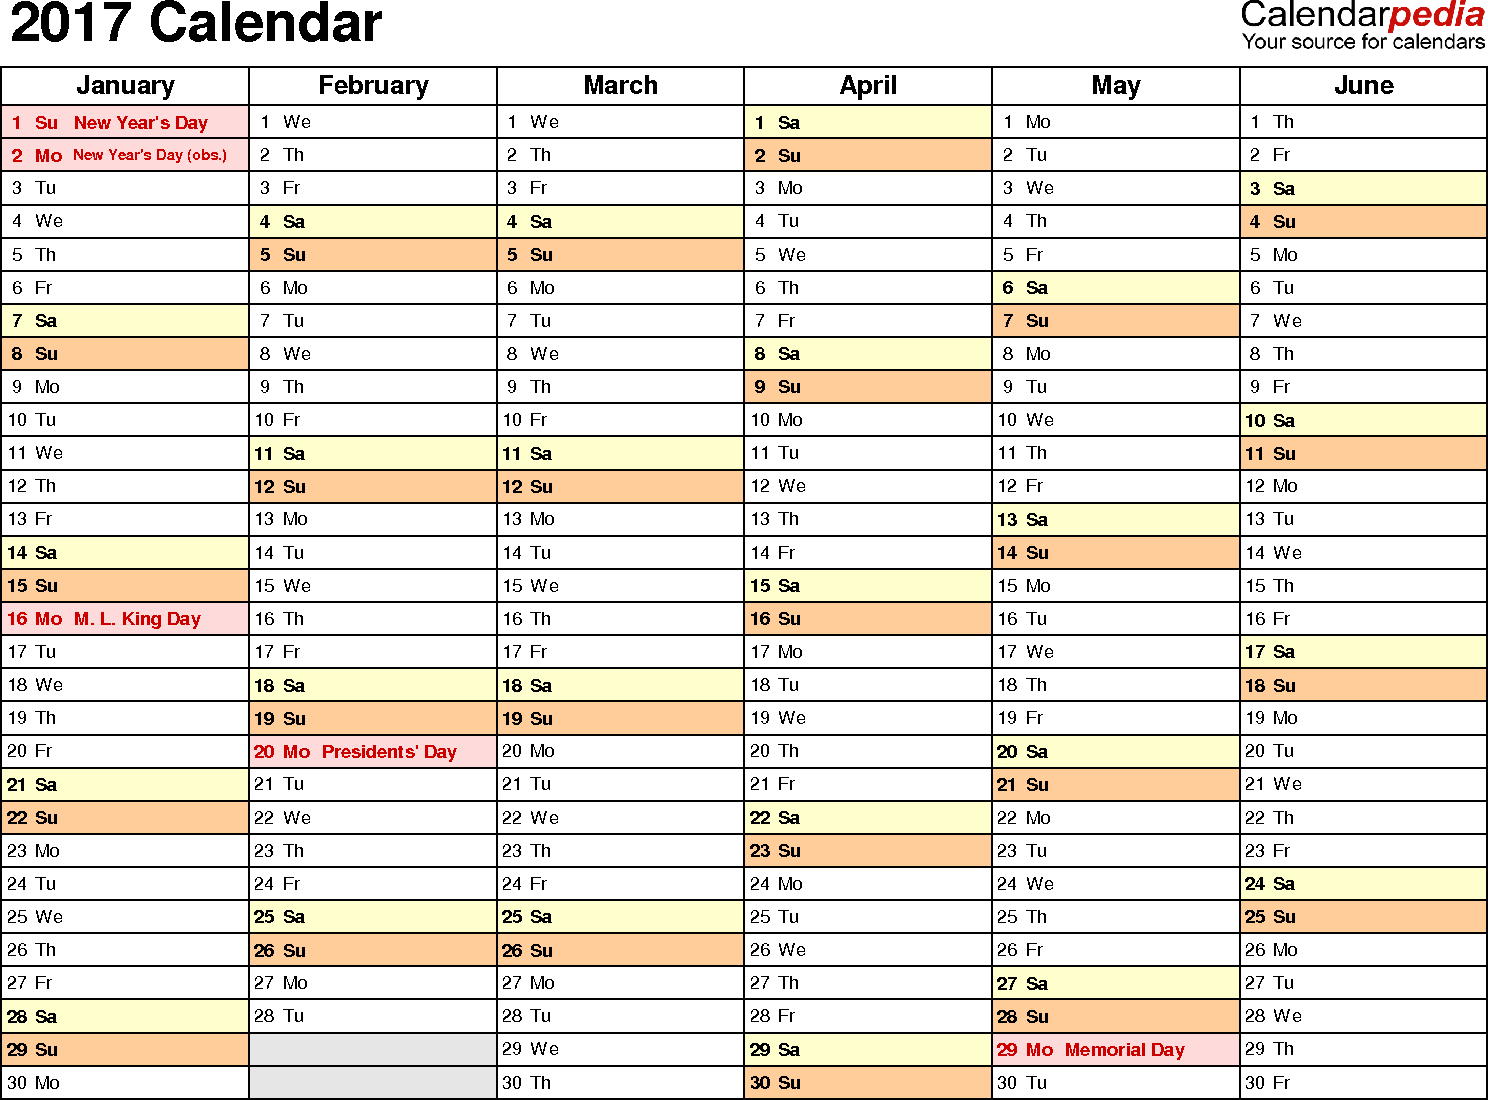 Ediblewildsus  Stunning  Calendar  Download  Free Printable Excel Templates Xls With Outstanding Template   Calendar For Excel Months Horizontally  Pages Landscape Orientation With Agreeable How To Use Excel Youtube Also Create Org Chart From Excel In Addition Excel Vba String Manipulation And Excel If And Then As Well As Row Number In Excel Additionally Youtube Excel Vlookup From Calendarpediacom With Ediblewildsus  Outstanding  Calendar  Download  Free Printable Excel Templates Xls With Agreeable Template   Calendar For Excel Months Horizontally  Pages Landscape Orientation And Stunning How To Use Excel Youtube Also Create Org Chart From Excel In Addition Excel Vba String Manipulation From Calendarpediacom